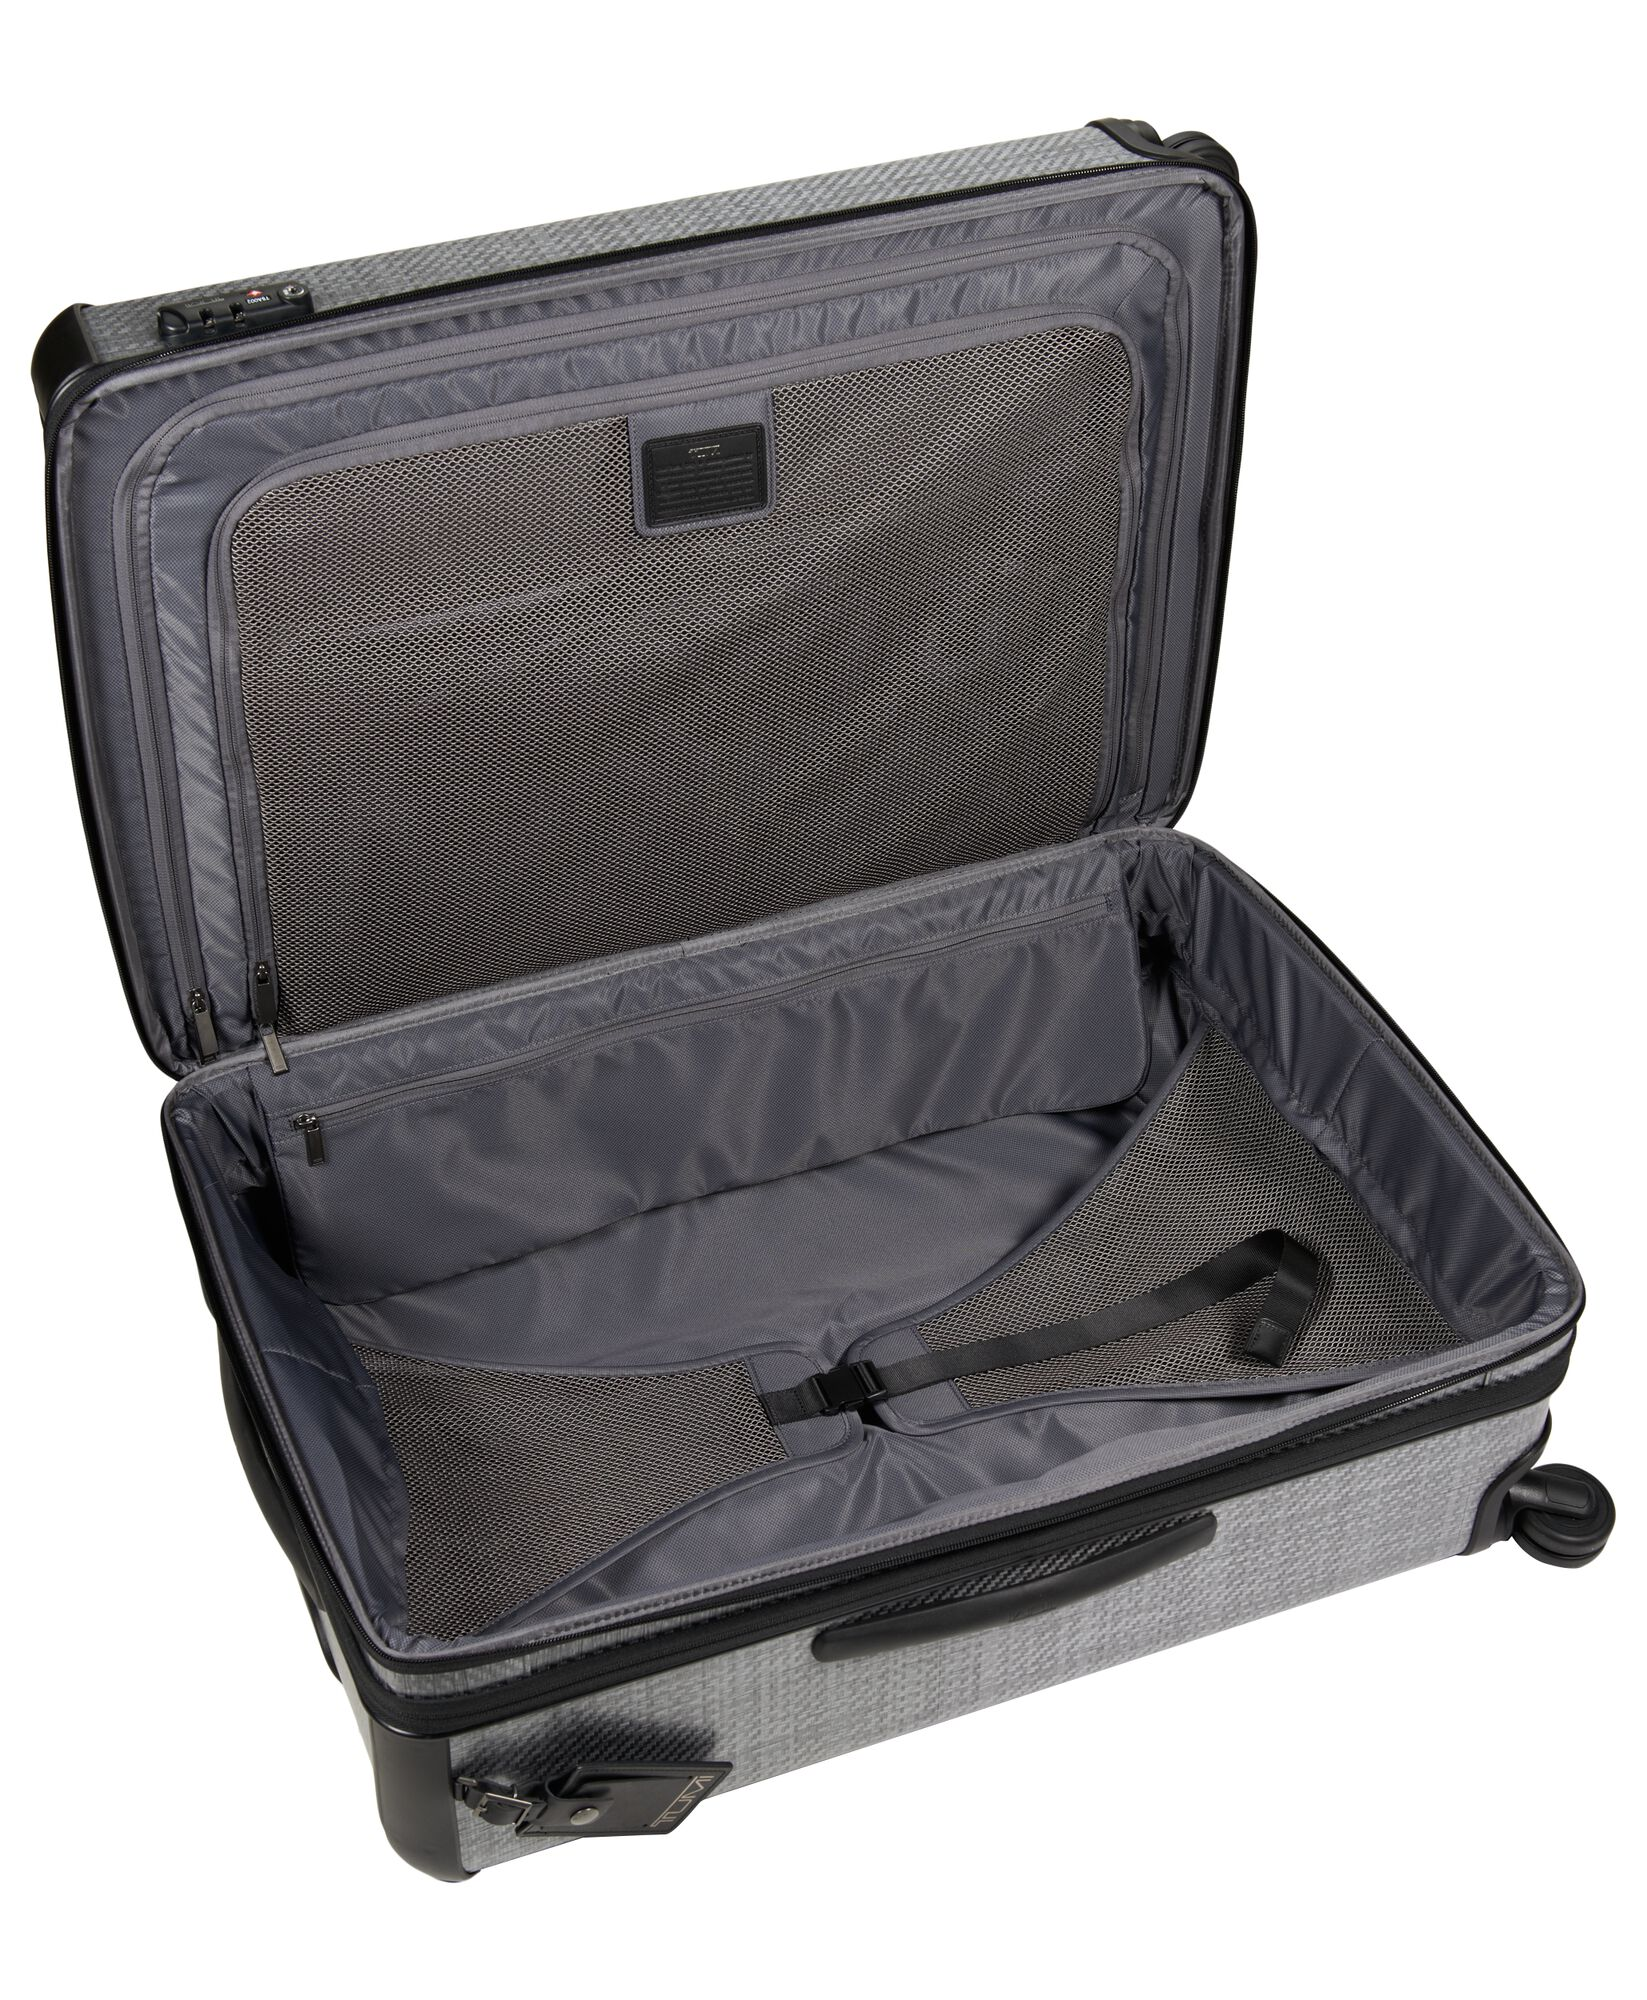 800b6ebe7 Tegra-Lite® Max Large Trip Expandable Packing Case Tegra-Lite®